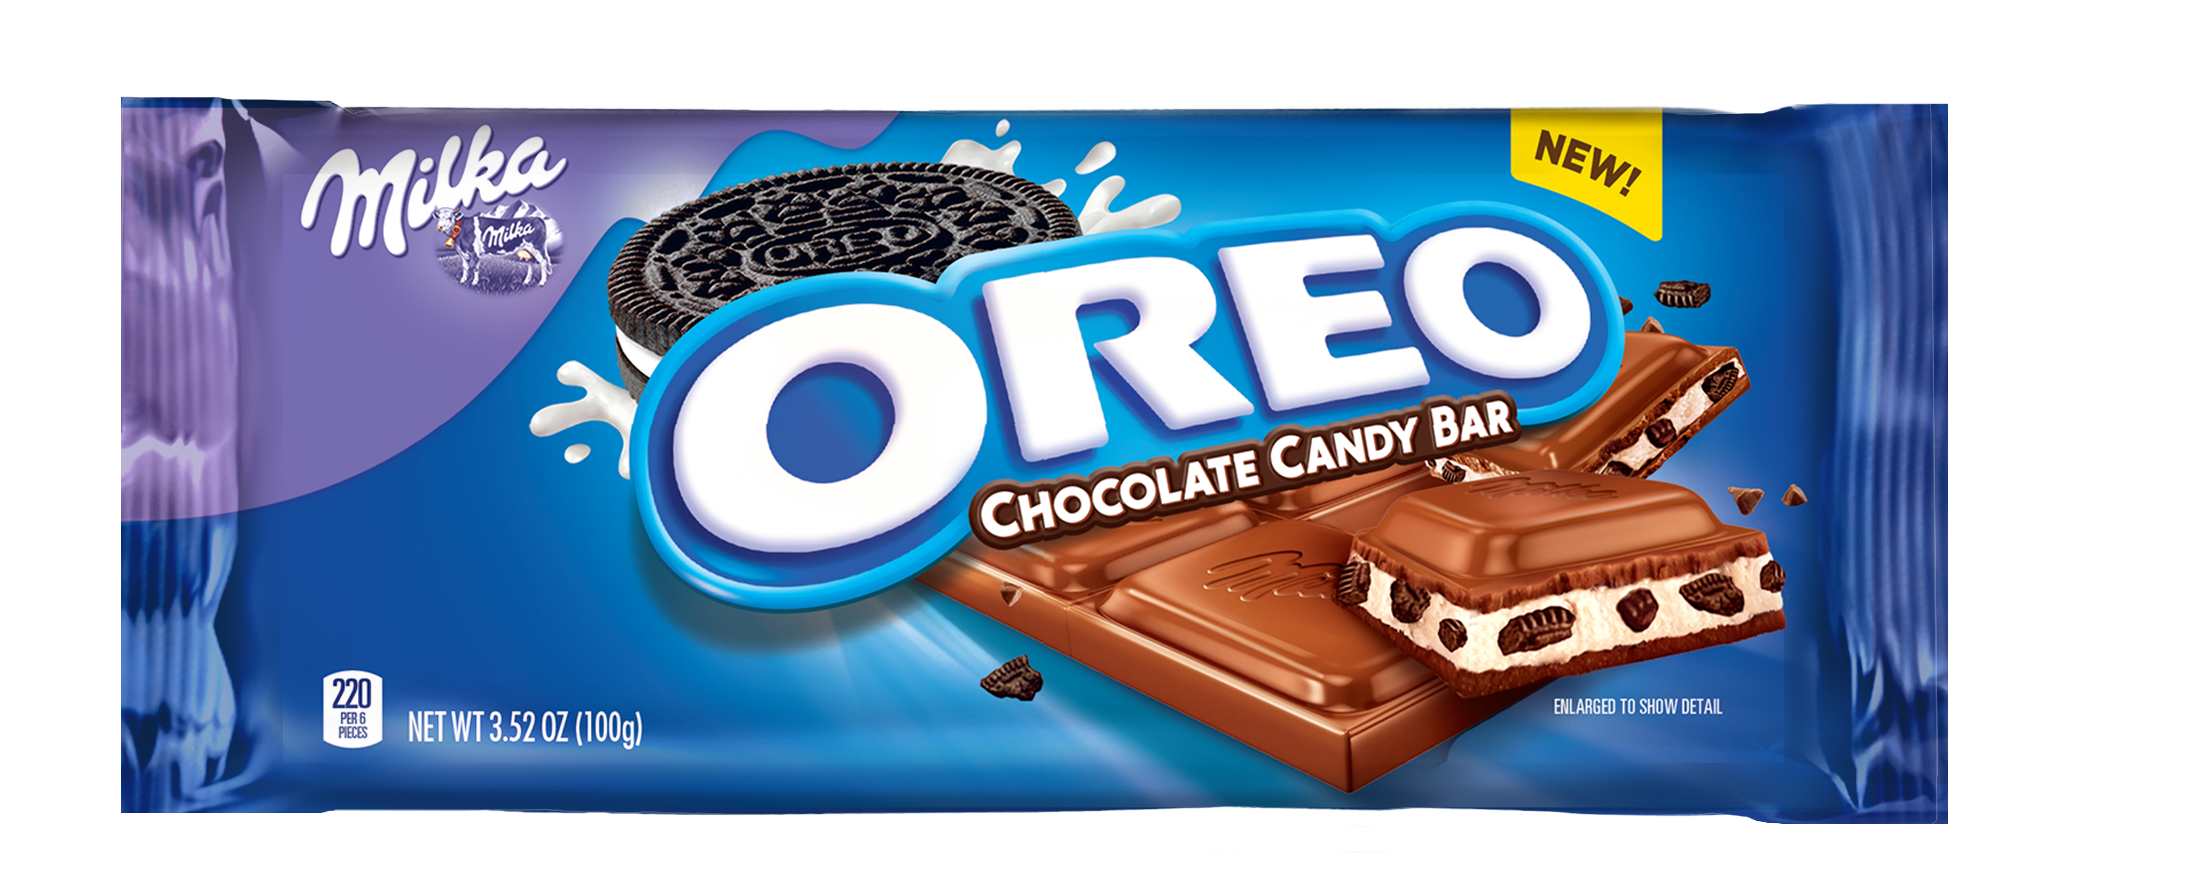 One of the two new Oreo candy bars.